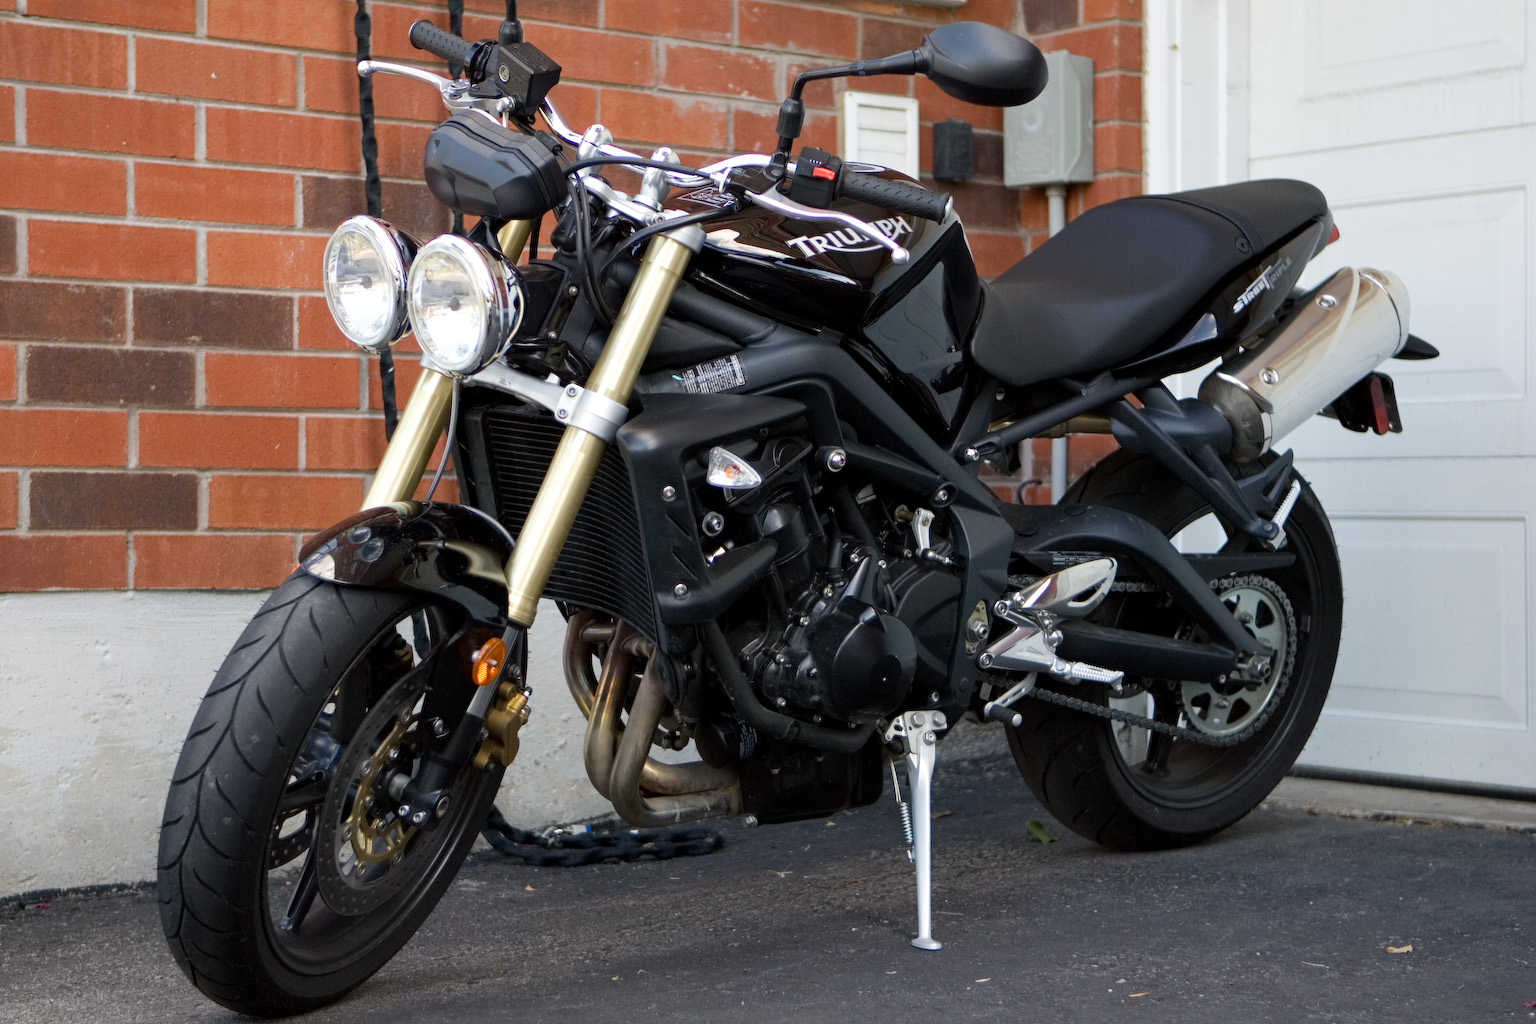 Triumph Speed Triple 1050 2007 images #125853